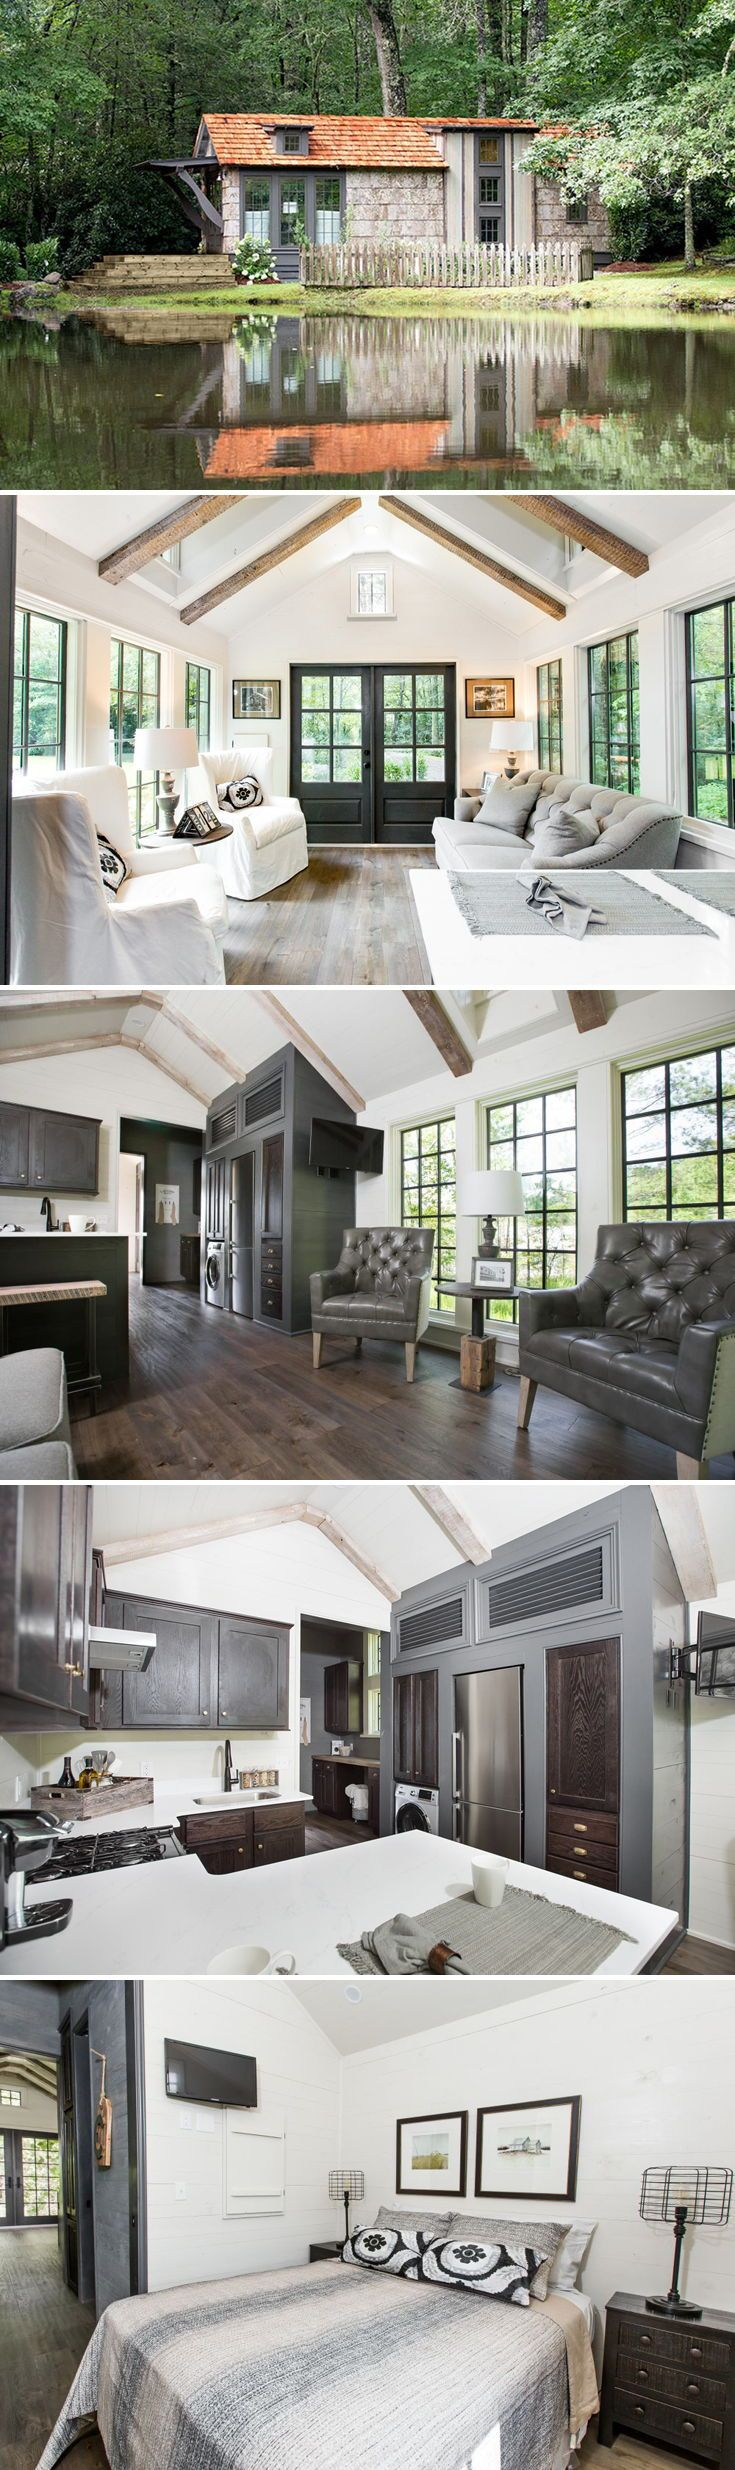 """Drawing inspiration from the marshlands of South Carolina, the Low Country by Clayton Tiny Homes was designed with southern living in mind. The 464-square-foot """"shotgun cottage"""" includes a large porch, vaulted ceilings, and dormer windows."""